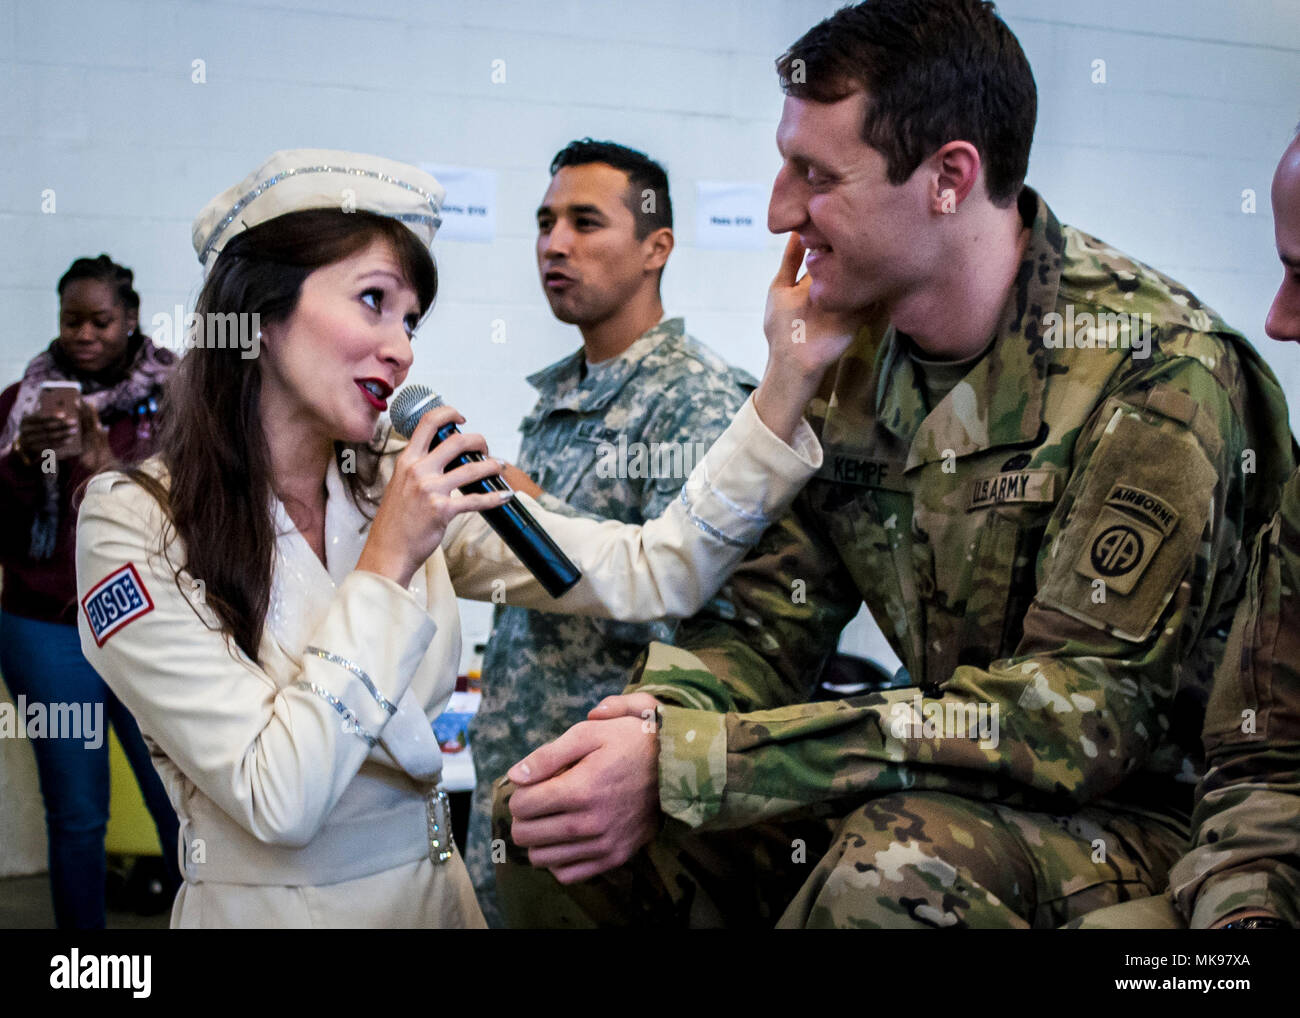 Amanda Downey, a member of the New York City based USO Show Troupe, sings a song to 1st Lt. Alexander Kempf, 32nd Engineer Company, 2nd Brigade, 82nd Airborne Division, during the lottery portion of the 20th Annual Randy Oler Memorial Operation Toy Drop, Dec. 1, 2017. Operation Toy Drop, hosted by the U.S. Army Civil Affairs & Psychological Operations Command (Airborne) and is the largest combined airborne operation conducted worldwide. The event and allows Soldiers the opportunity to train on their military occupational specialty, maintain their airborne readiness, and give back to the lo - Stock Image